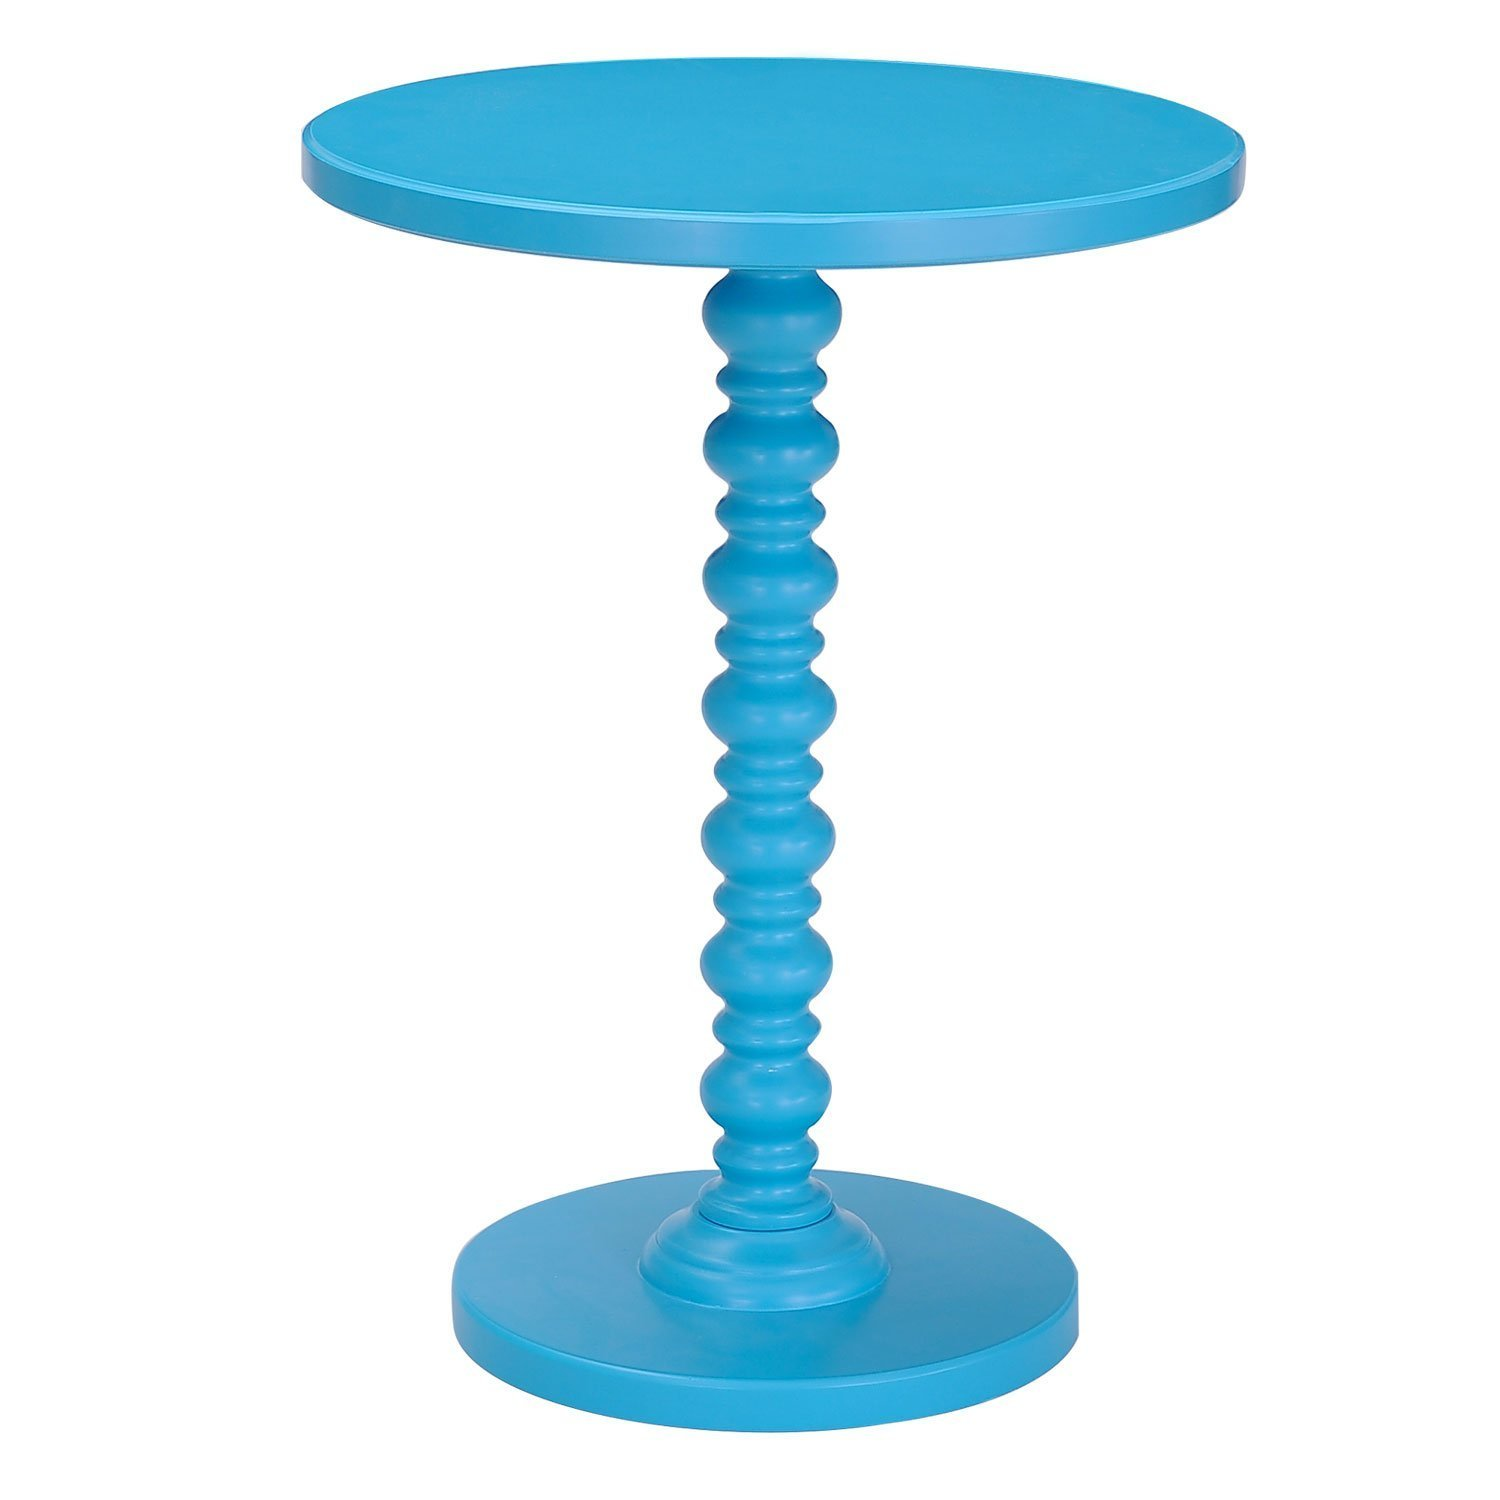 Adeco round wood spindle decorative end side table sky